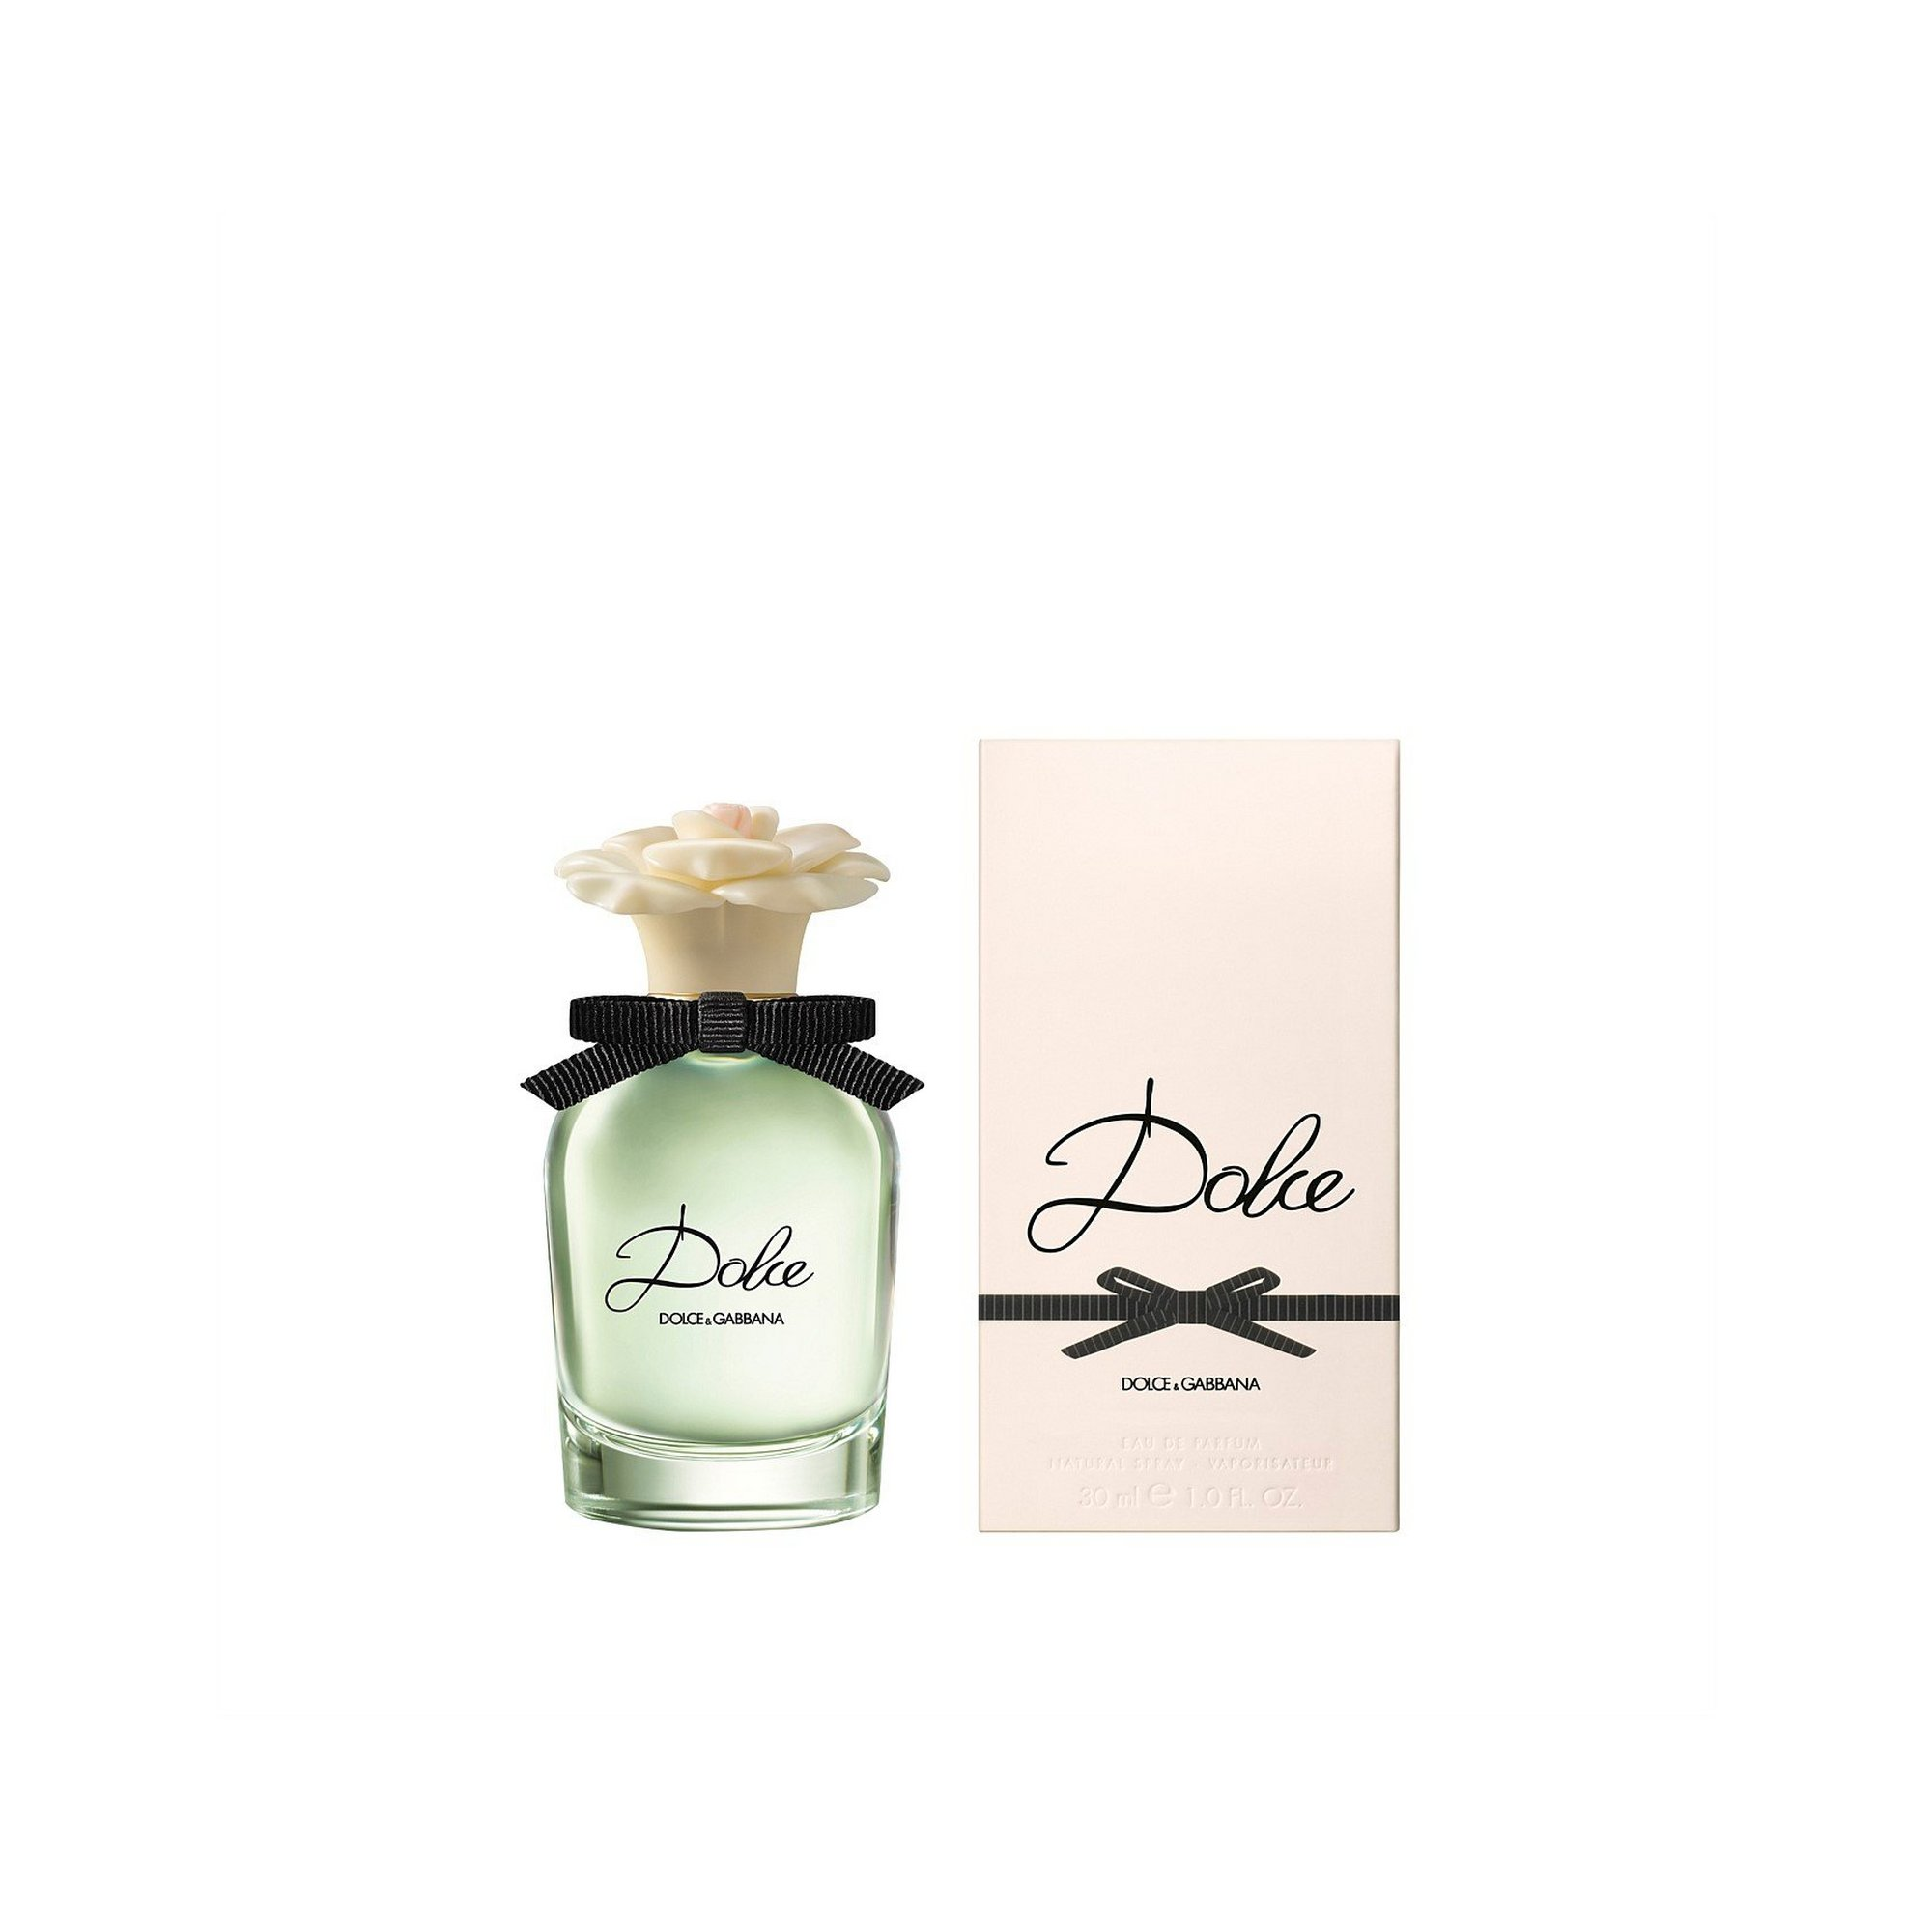 Image of Dolce and Gabbana Dolce EDP